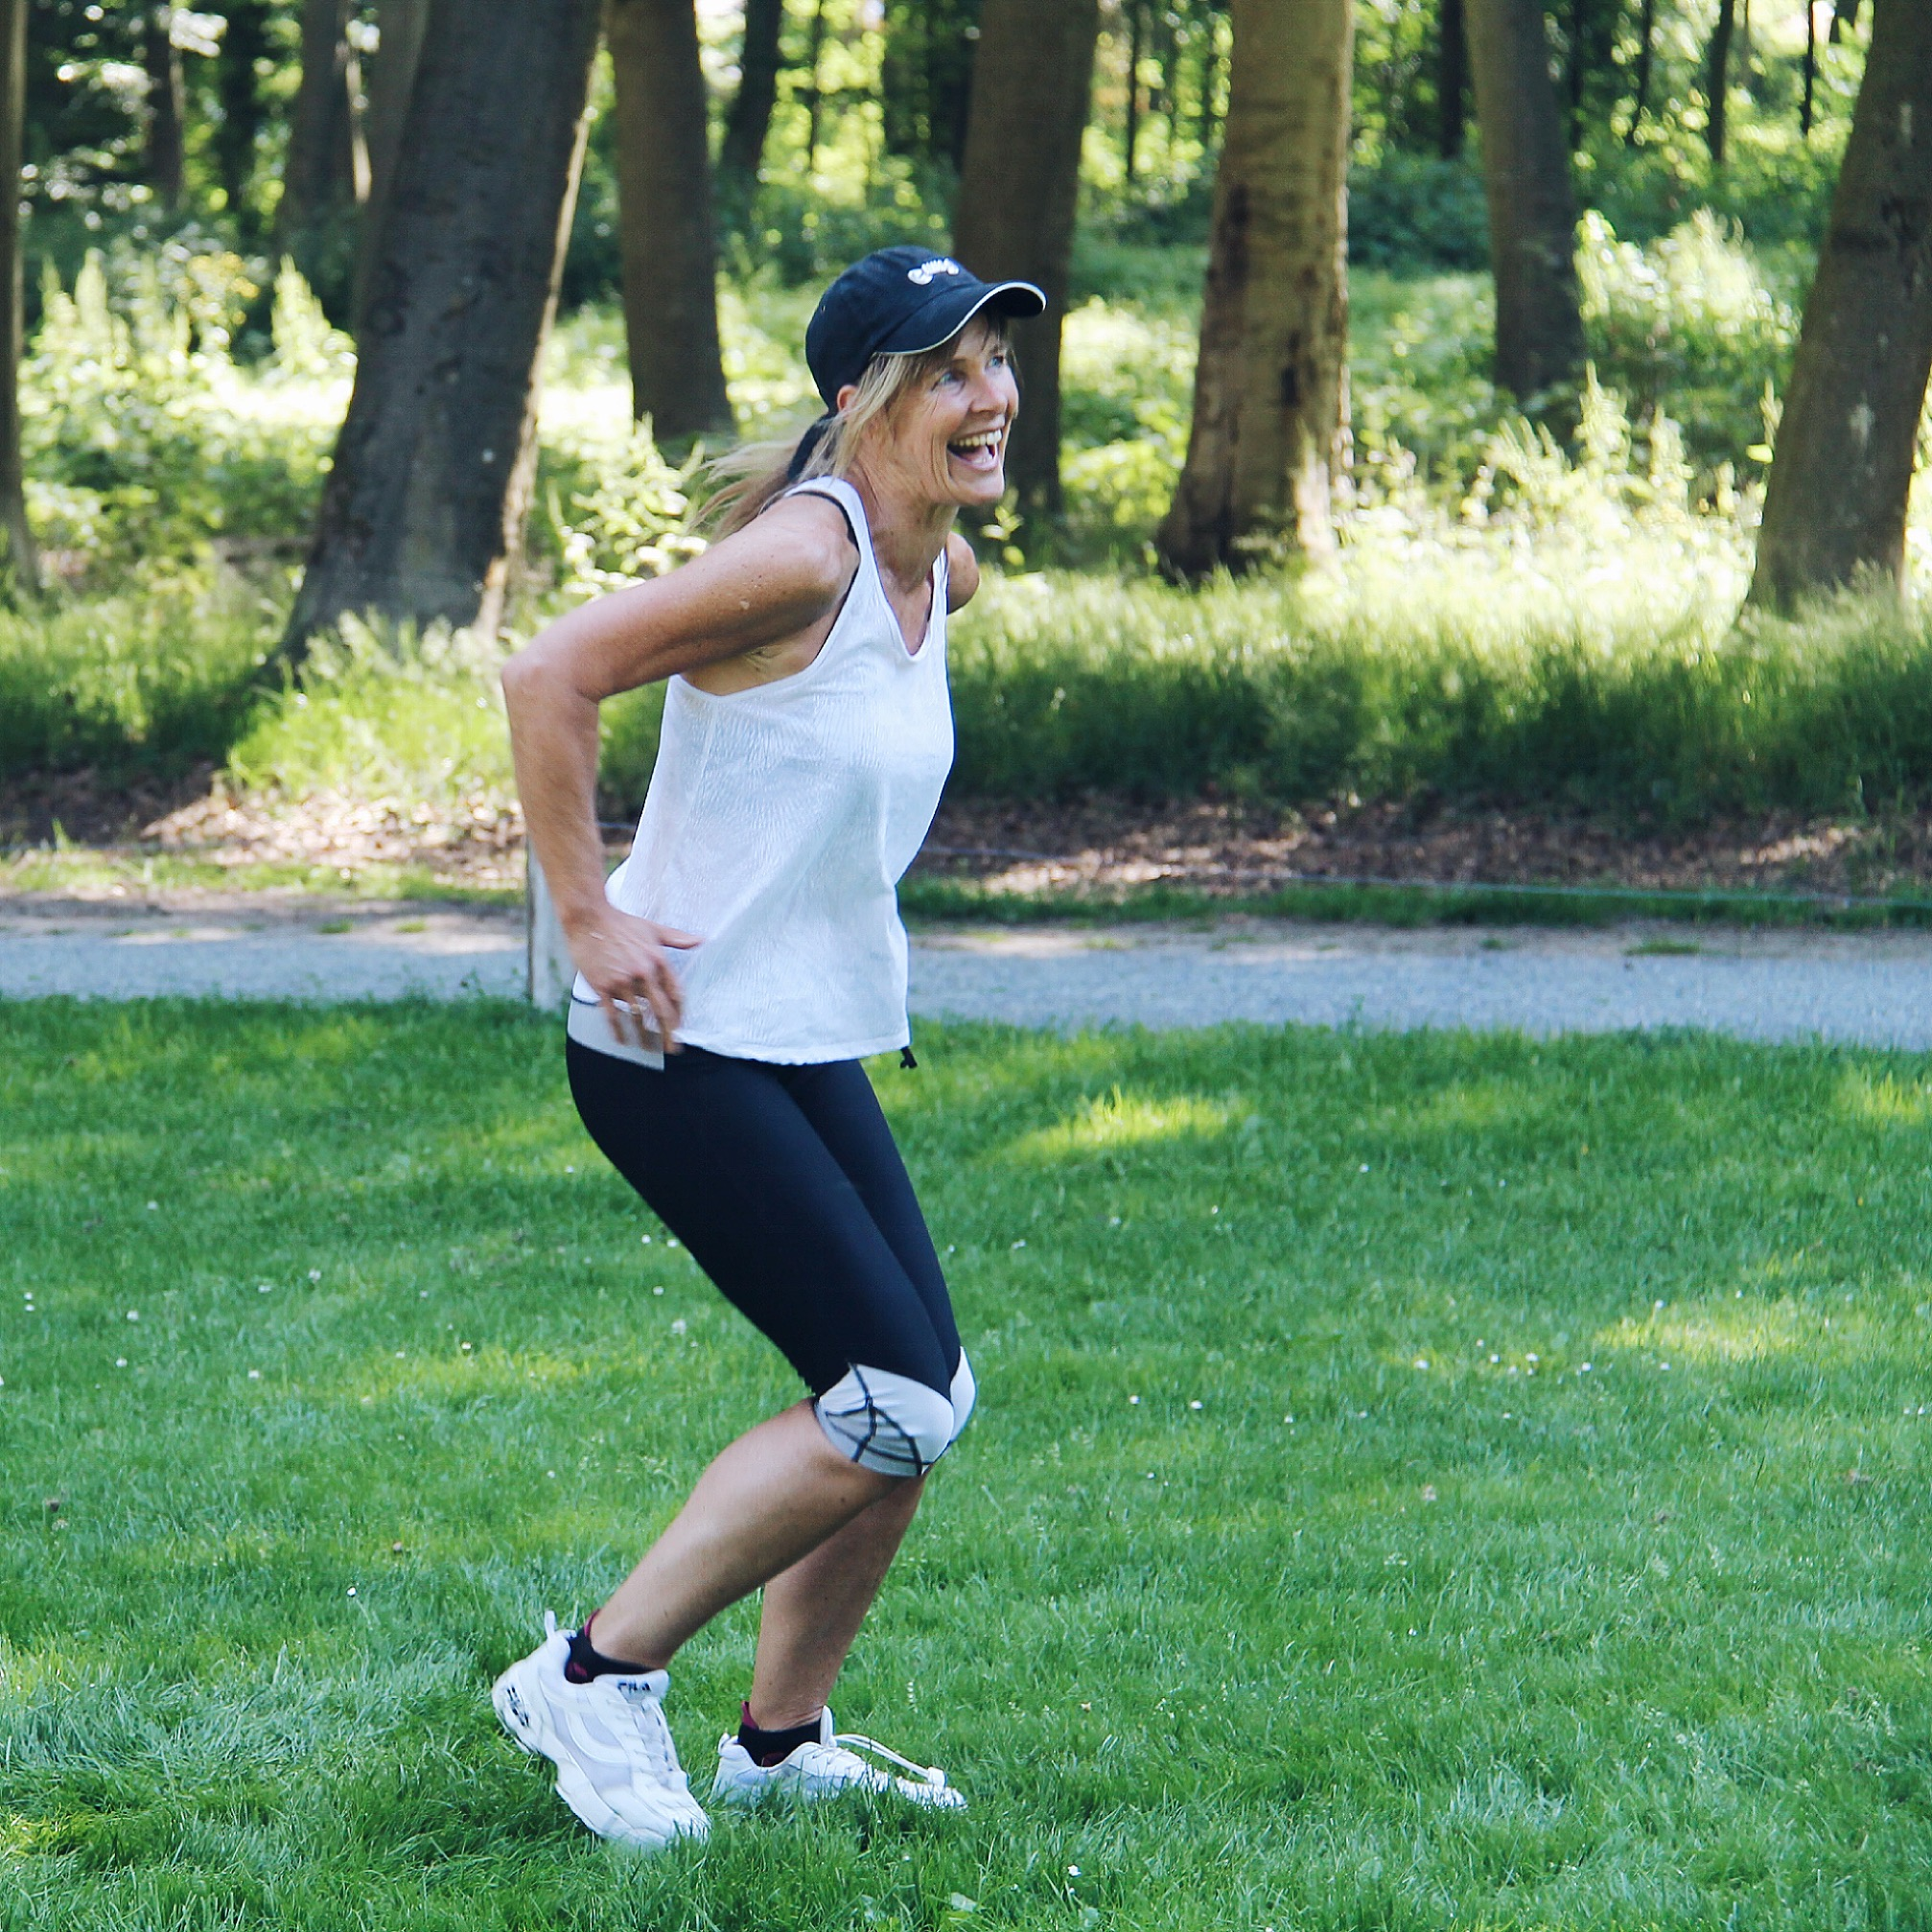 Nicole park - Active Fit and More